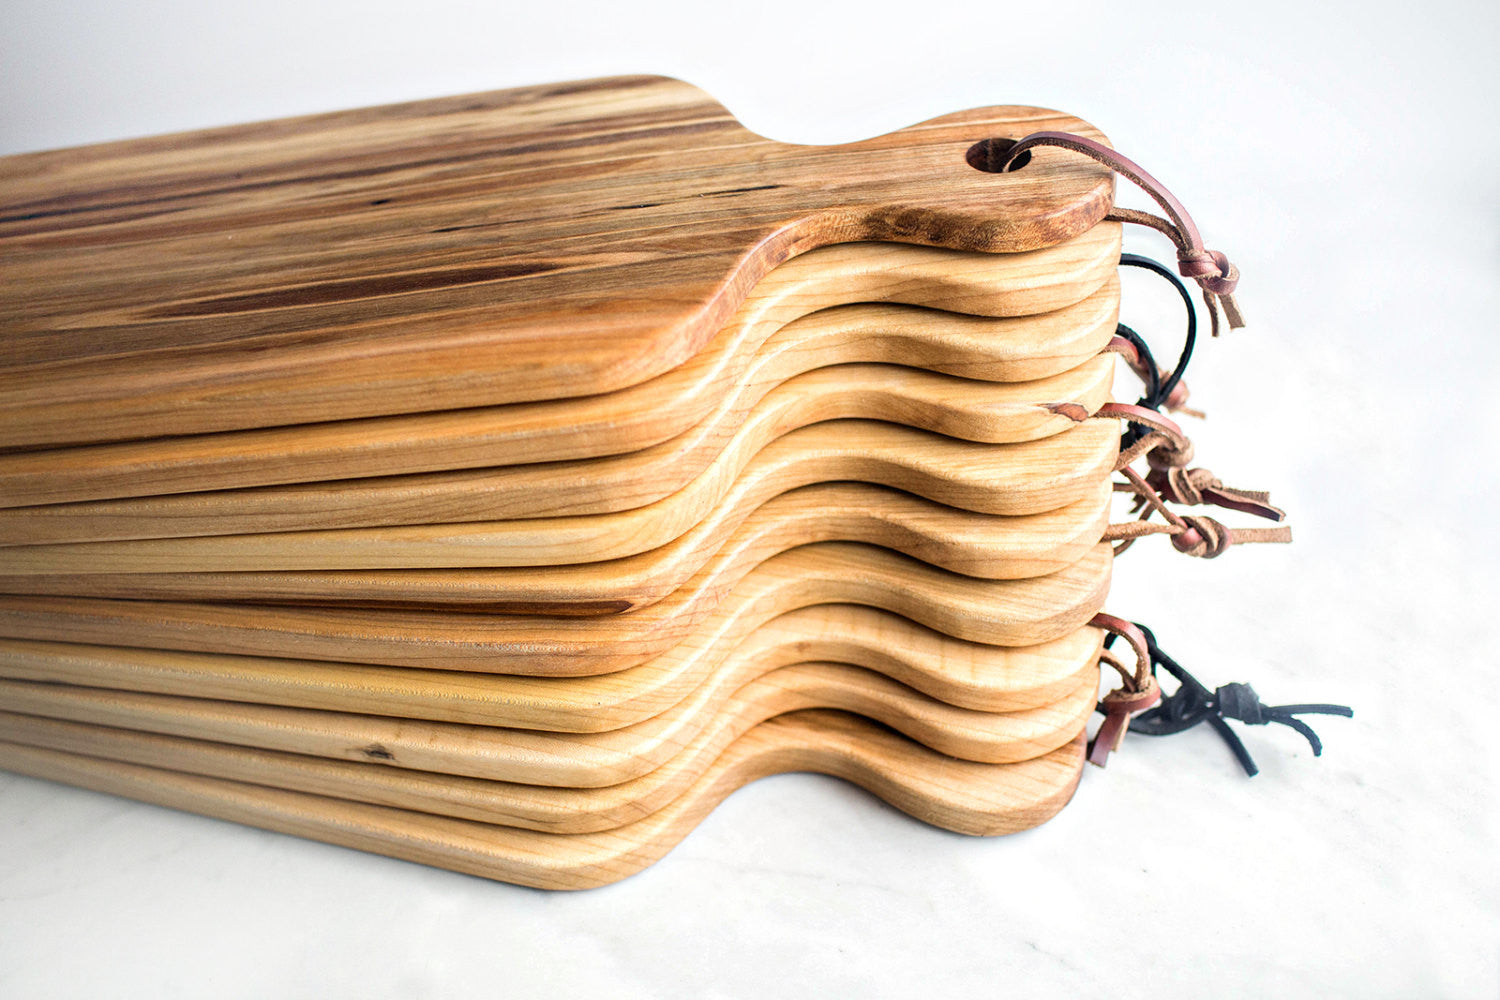 10 Charcuterie Serving Boards, Food Safe, Reclaimed Maple Wood, Handcrafted, Handmade, Made in Canada